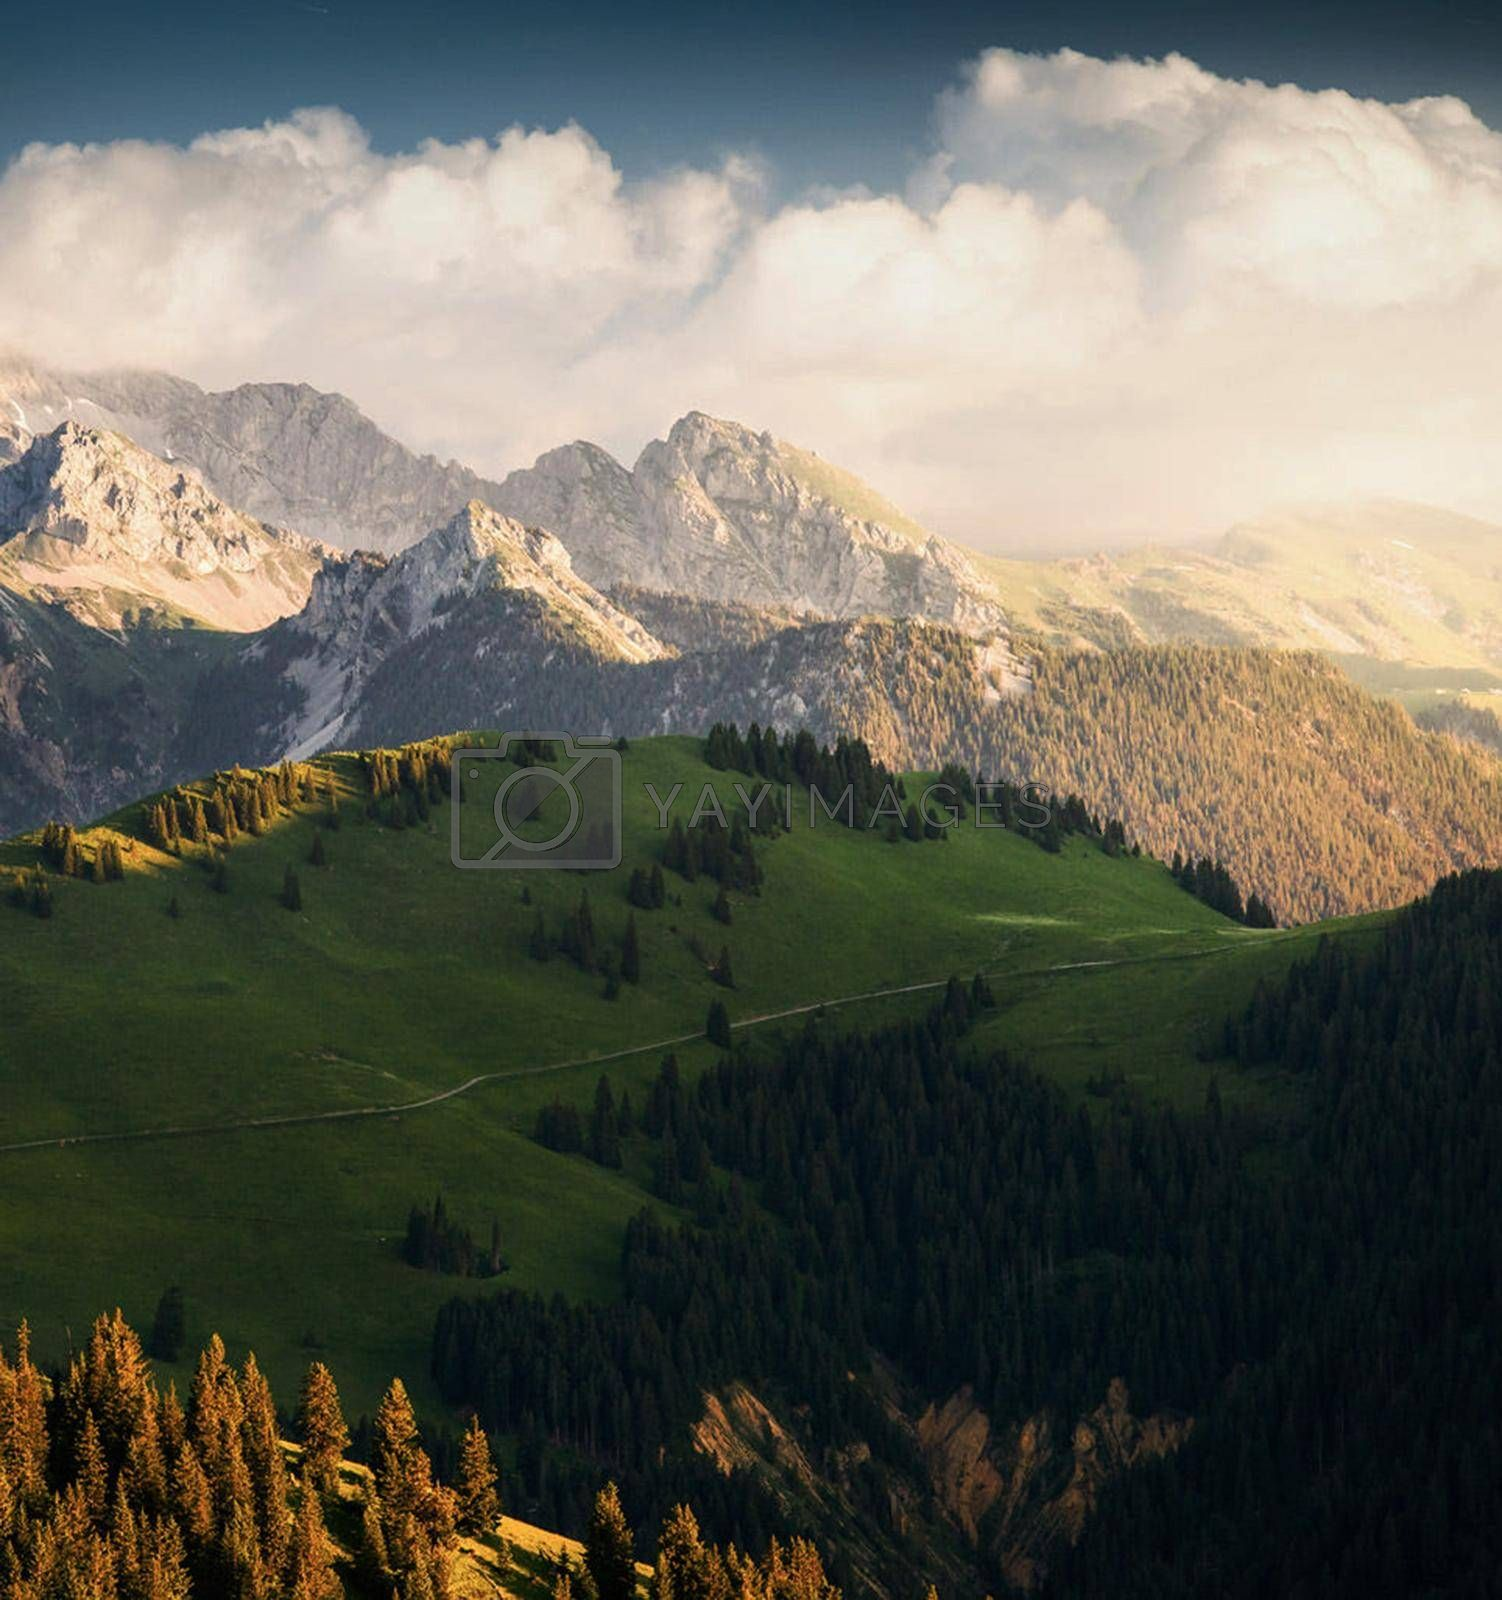 Royalty free image of Beautiful Gstaad Switzerland pictures by TravelSync27